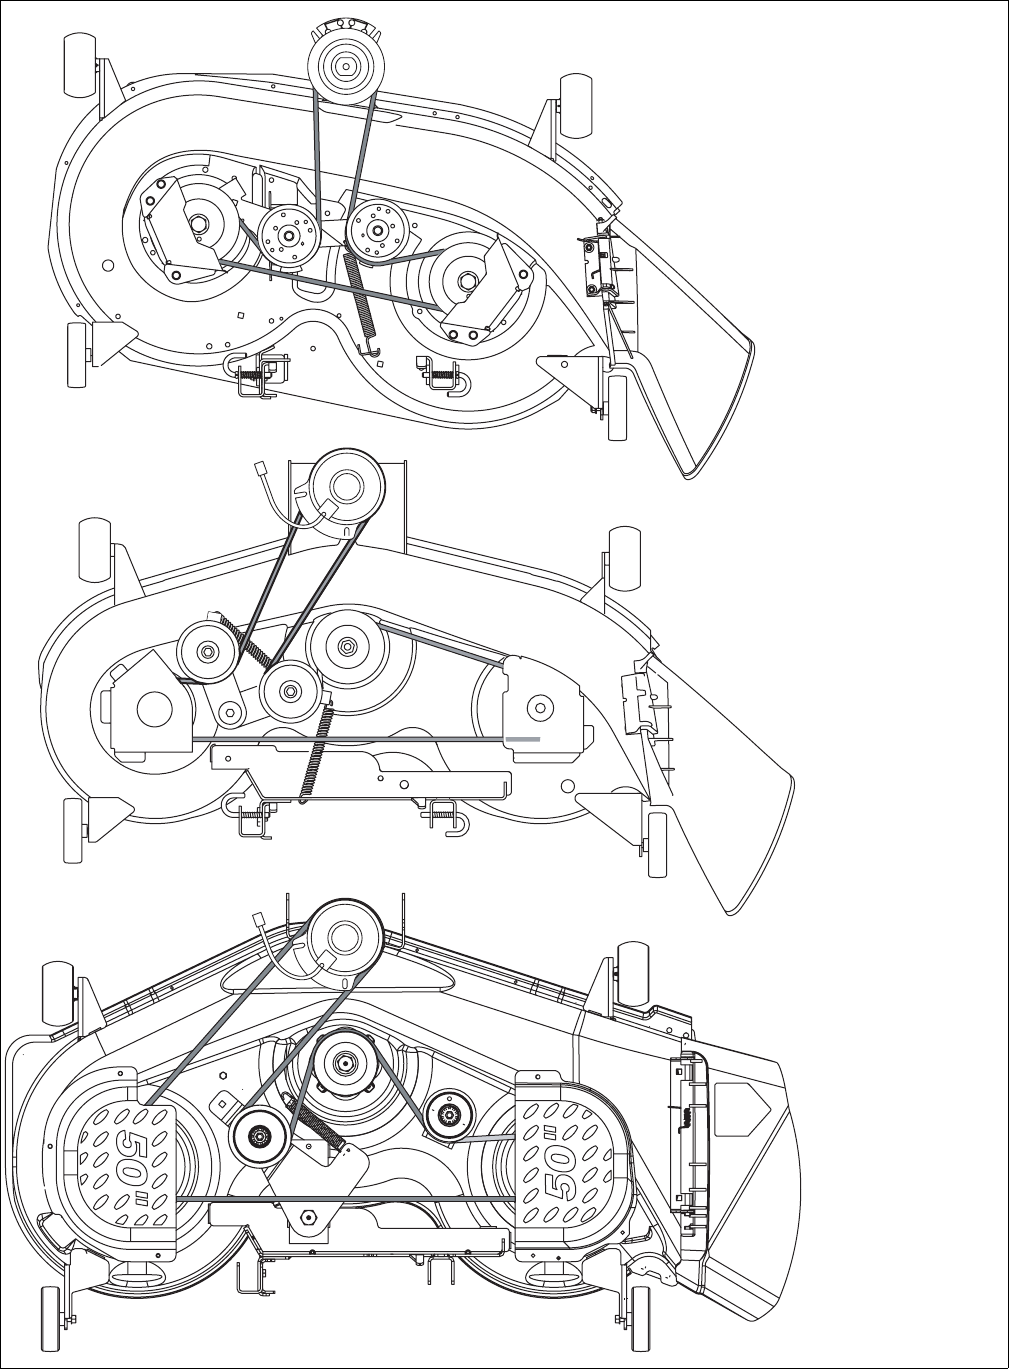 cub cadet 1515 wiring diagram html with Cub Cadet Ltx 1045 Parts Diagram on Cub Cadet 2130 Hydrostatic Drive Parts together with Deck Belt Configuration 382340 besides 63191 moreover Wiringdiagrams moreover T13633391 Need diagram dynamark lawn tractor.